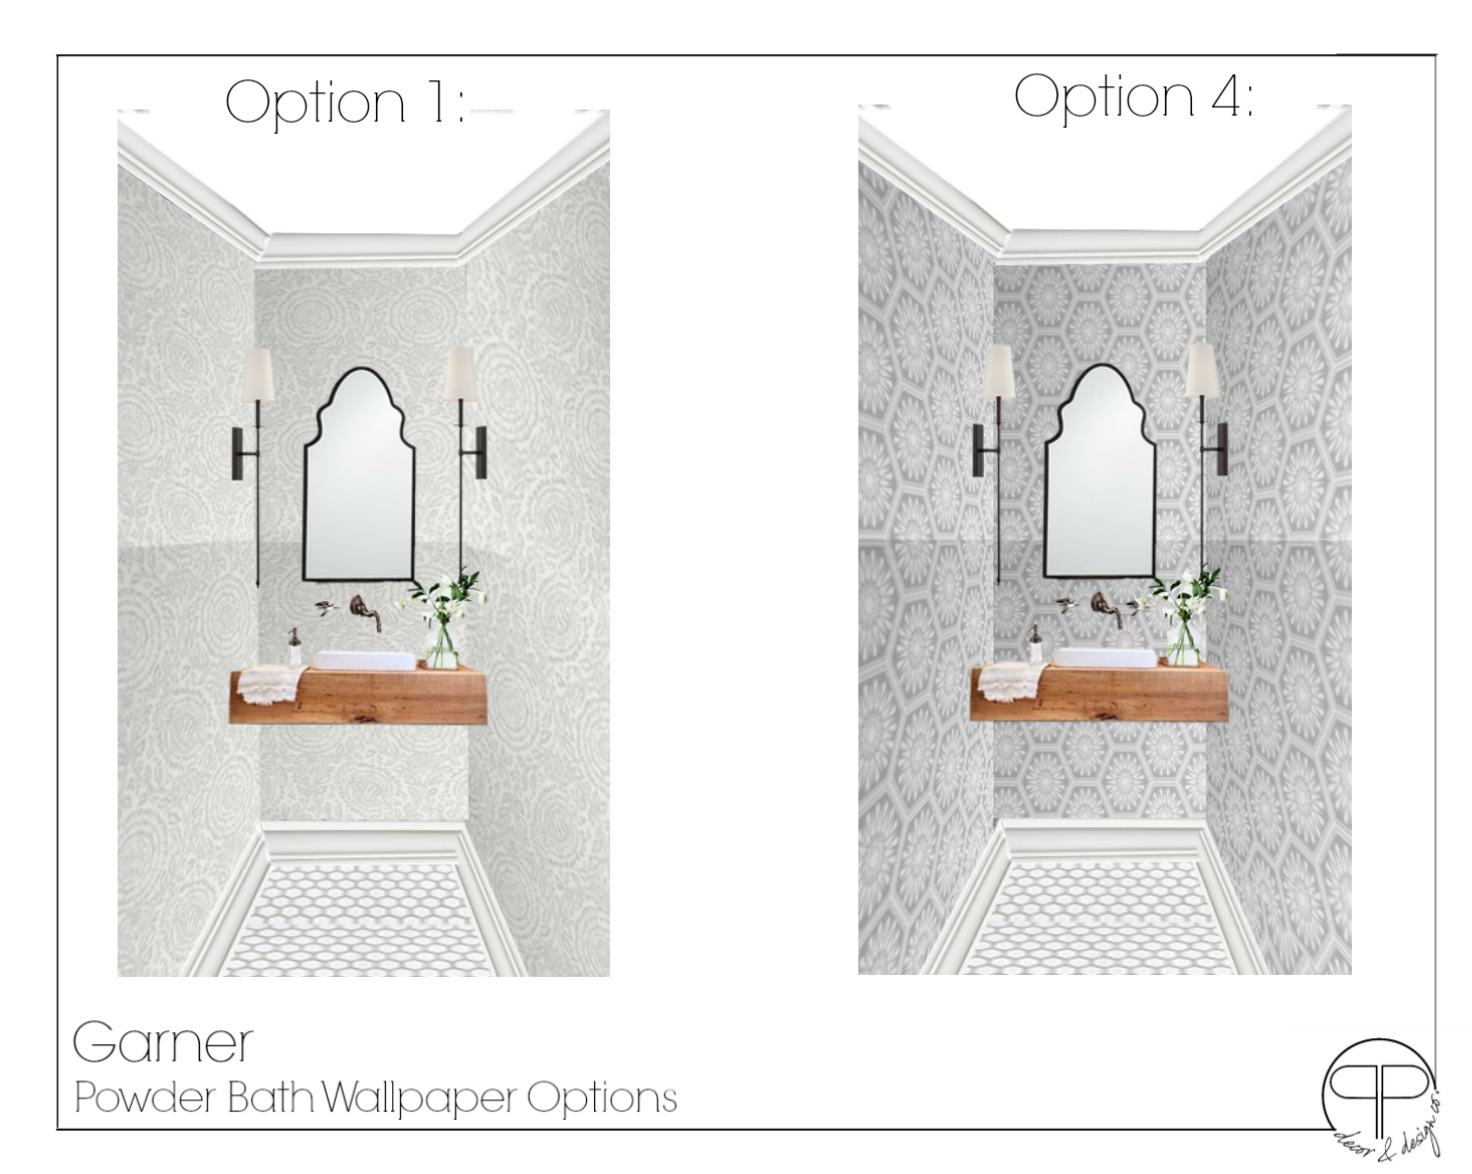 Garner_Powder_Bath_Wallpaper_Option_Final.png